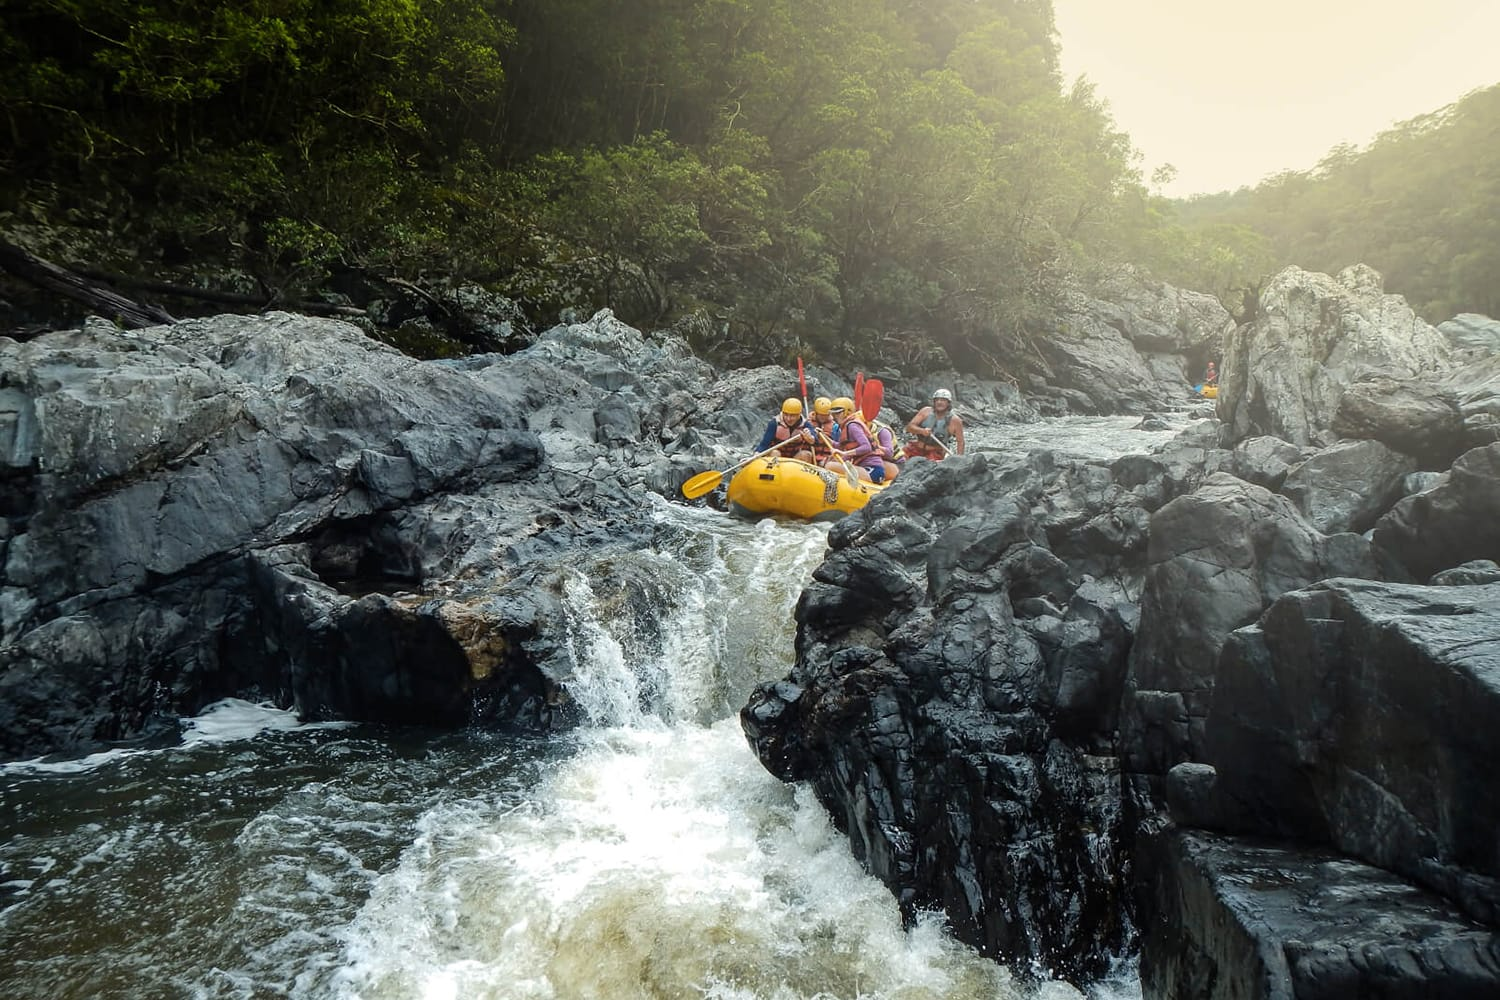 Whitewater Rafting Day Trip, Including Transfers - Upper Nymboida River